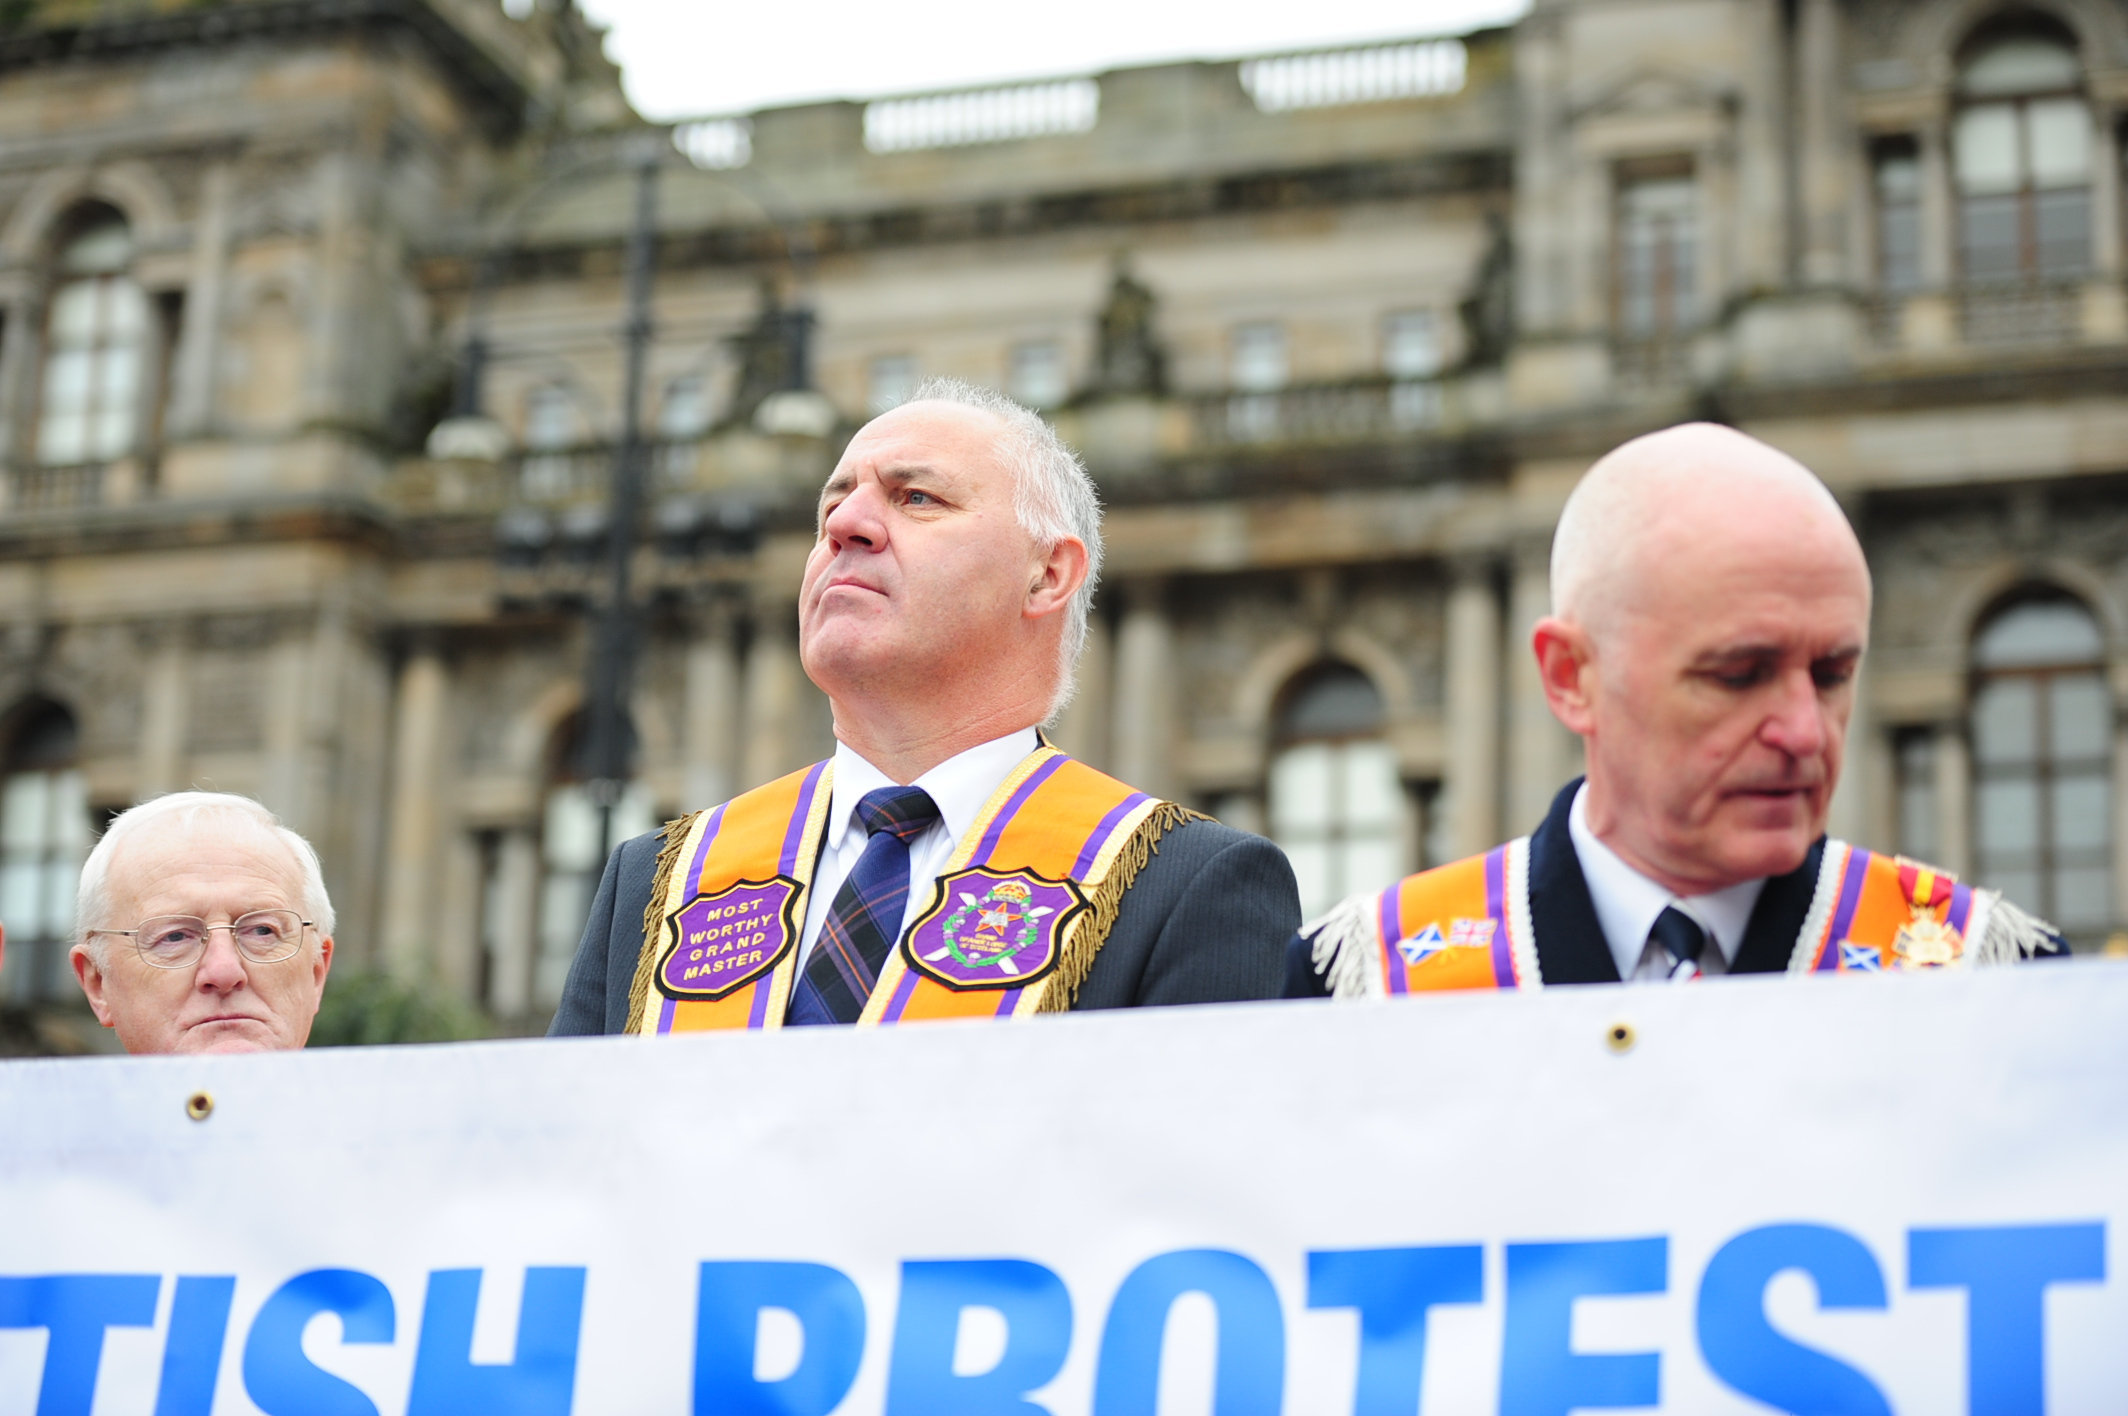 Orange lodge leader calls for 'respect' from marches ahead of weekend Glasgow parades